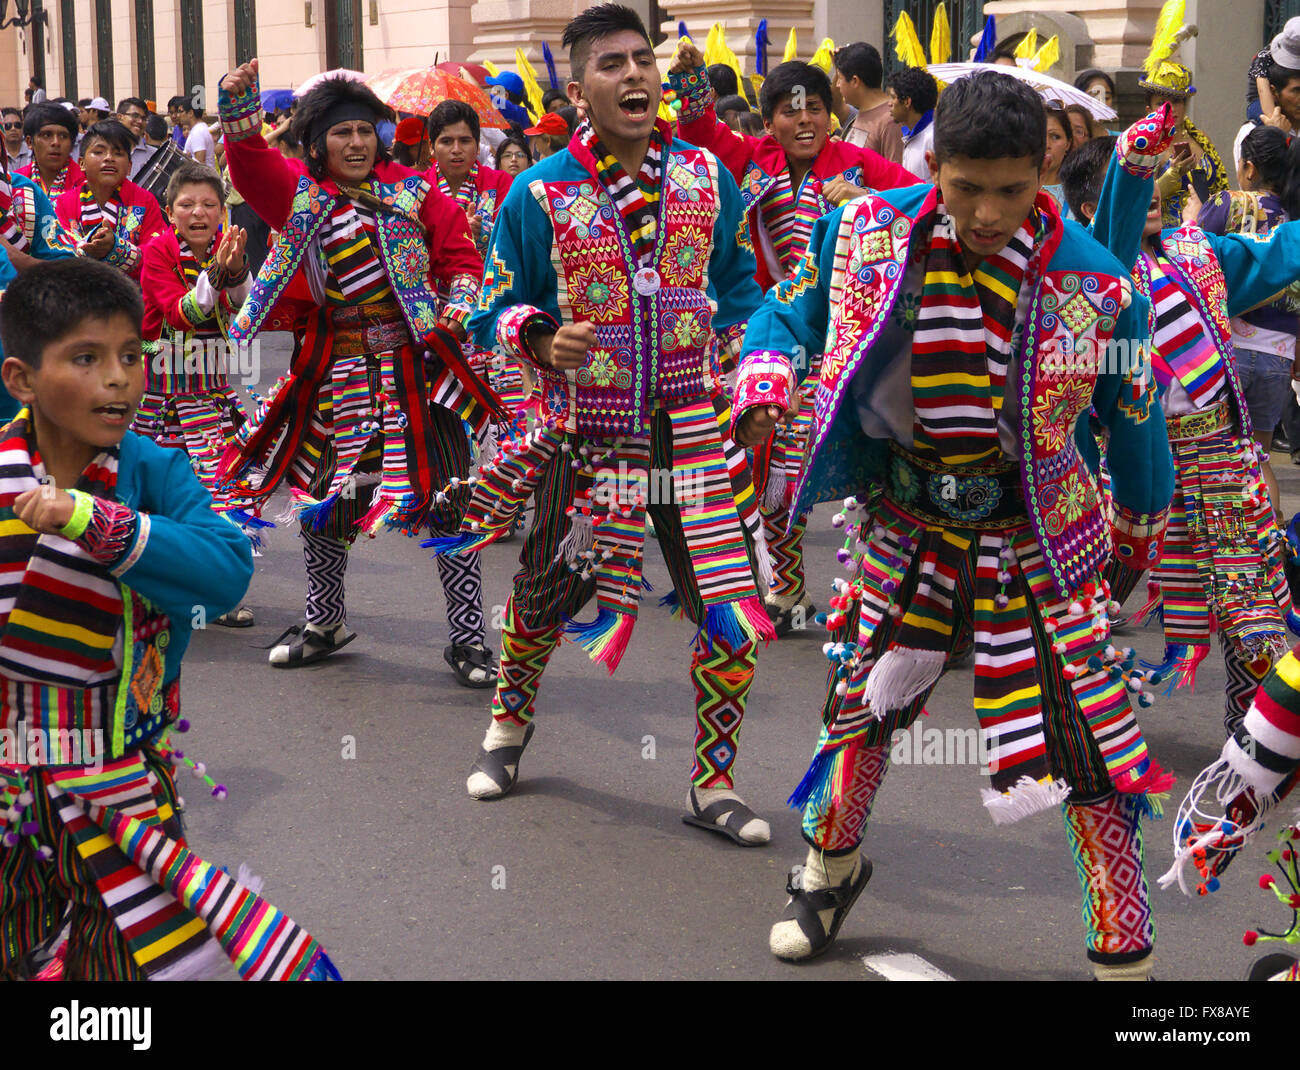 people in traditional peruvian dress dancing in the street in lima